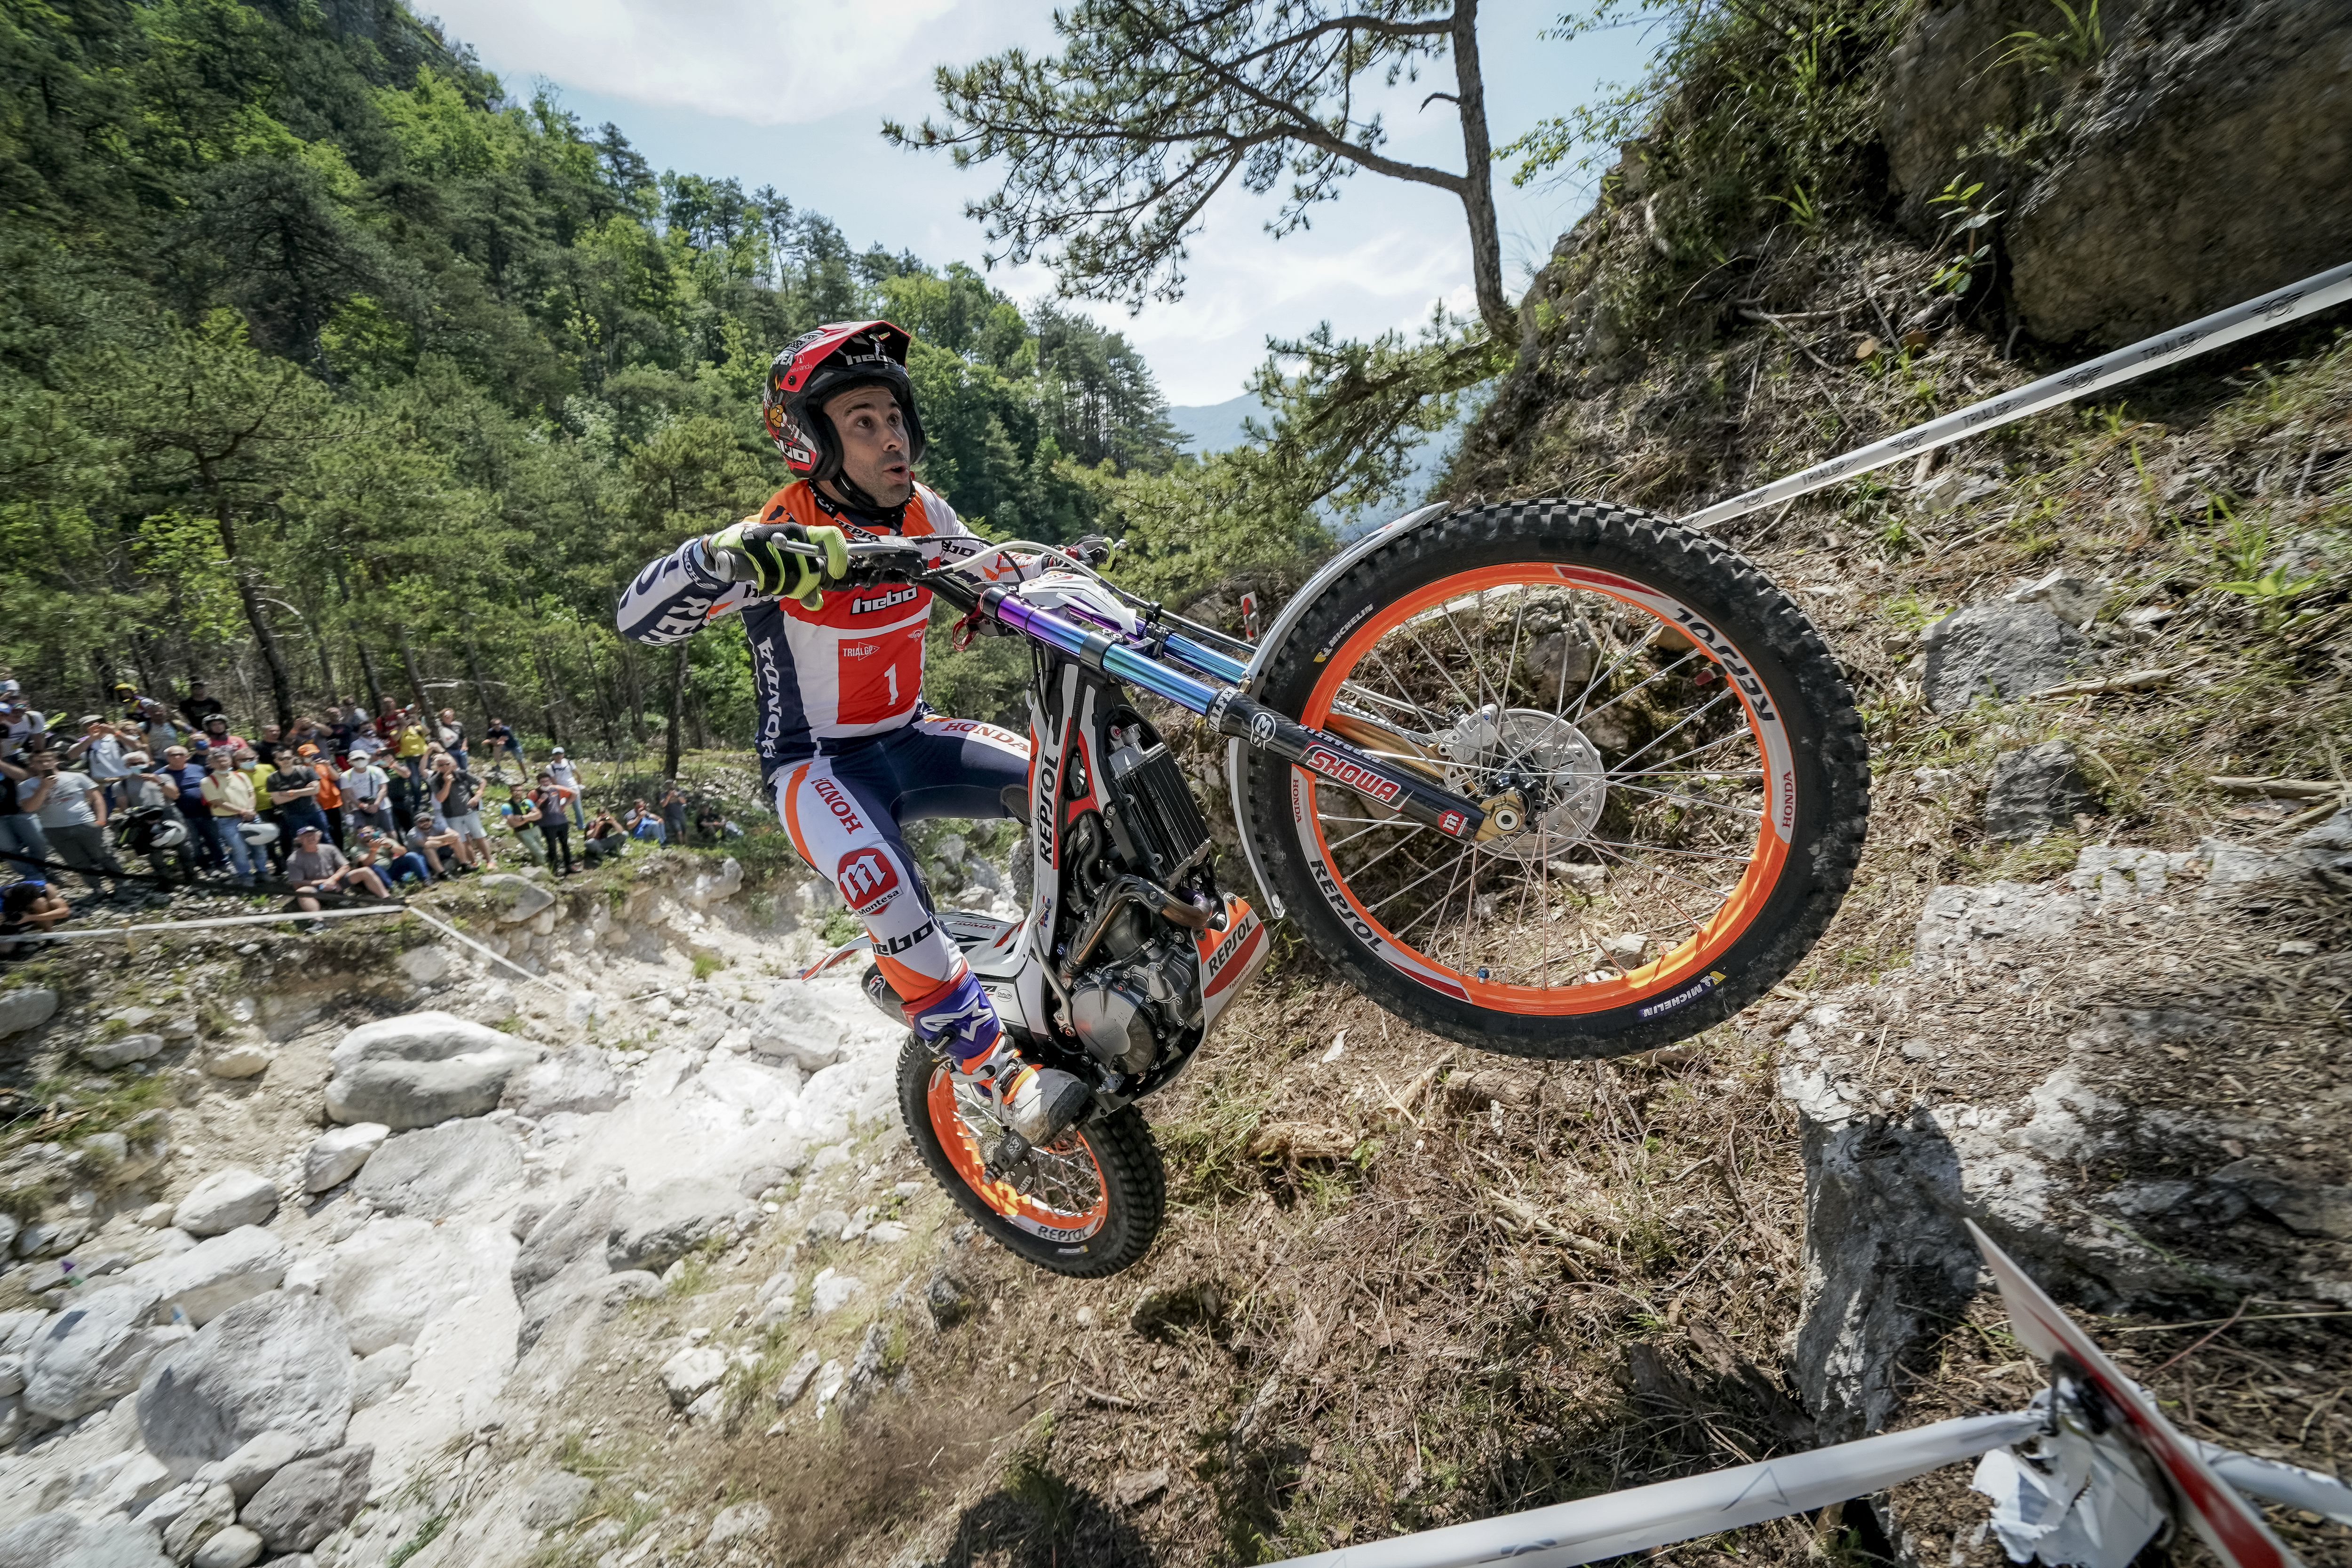 France awaits leader Toni Bou for the third trial of the world championship